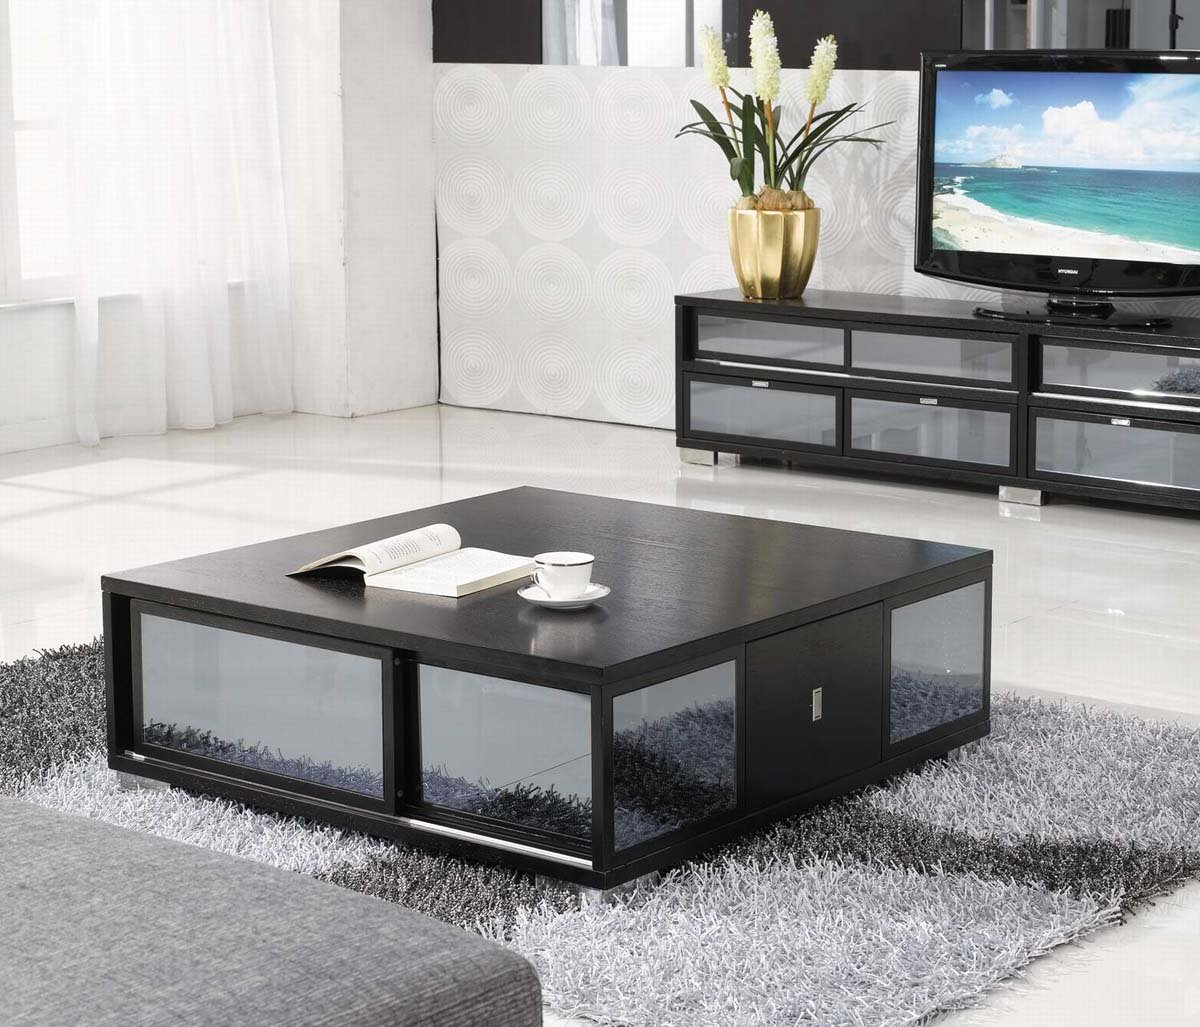 Living Room Table Designs Types Of Tables For Living Room And Brief Buying Guide